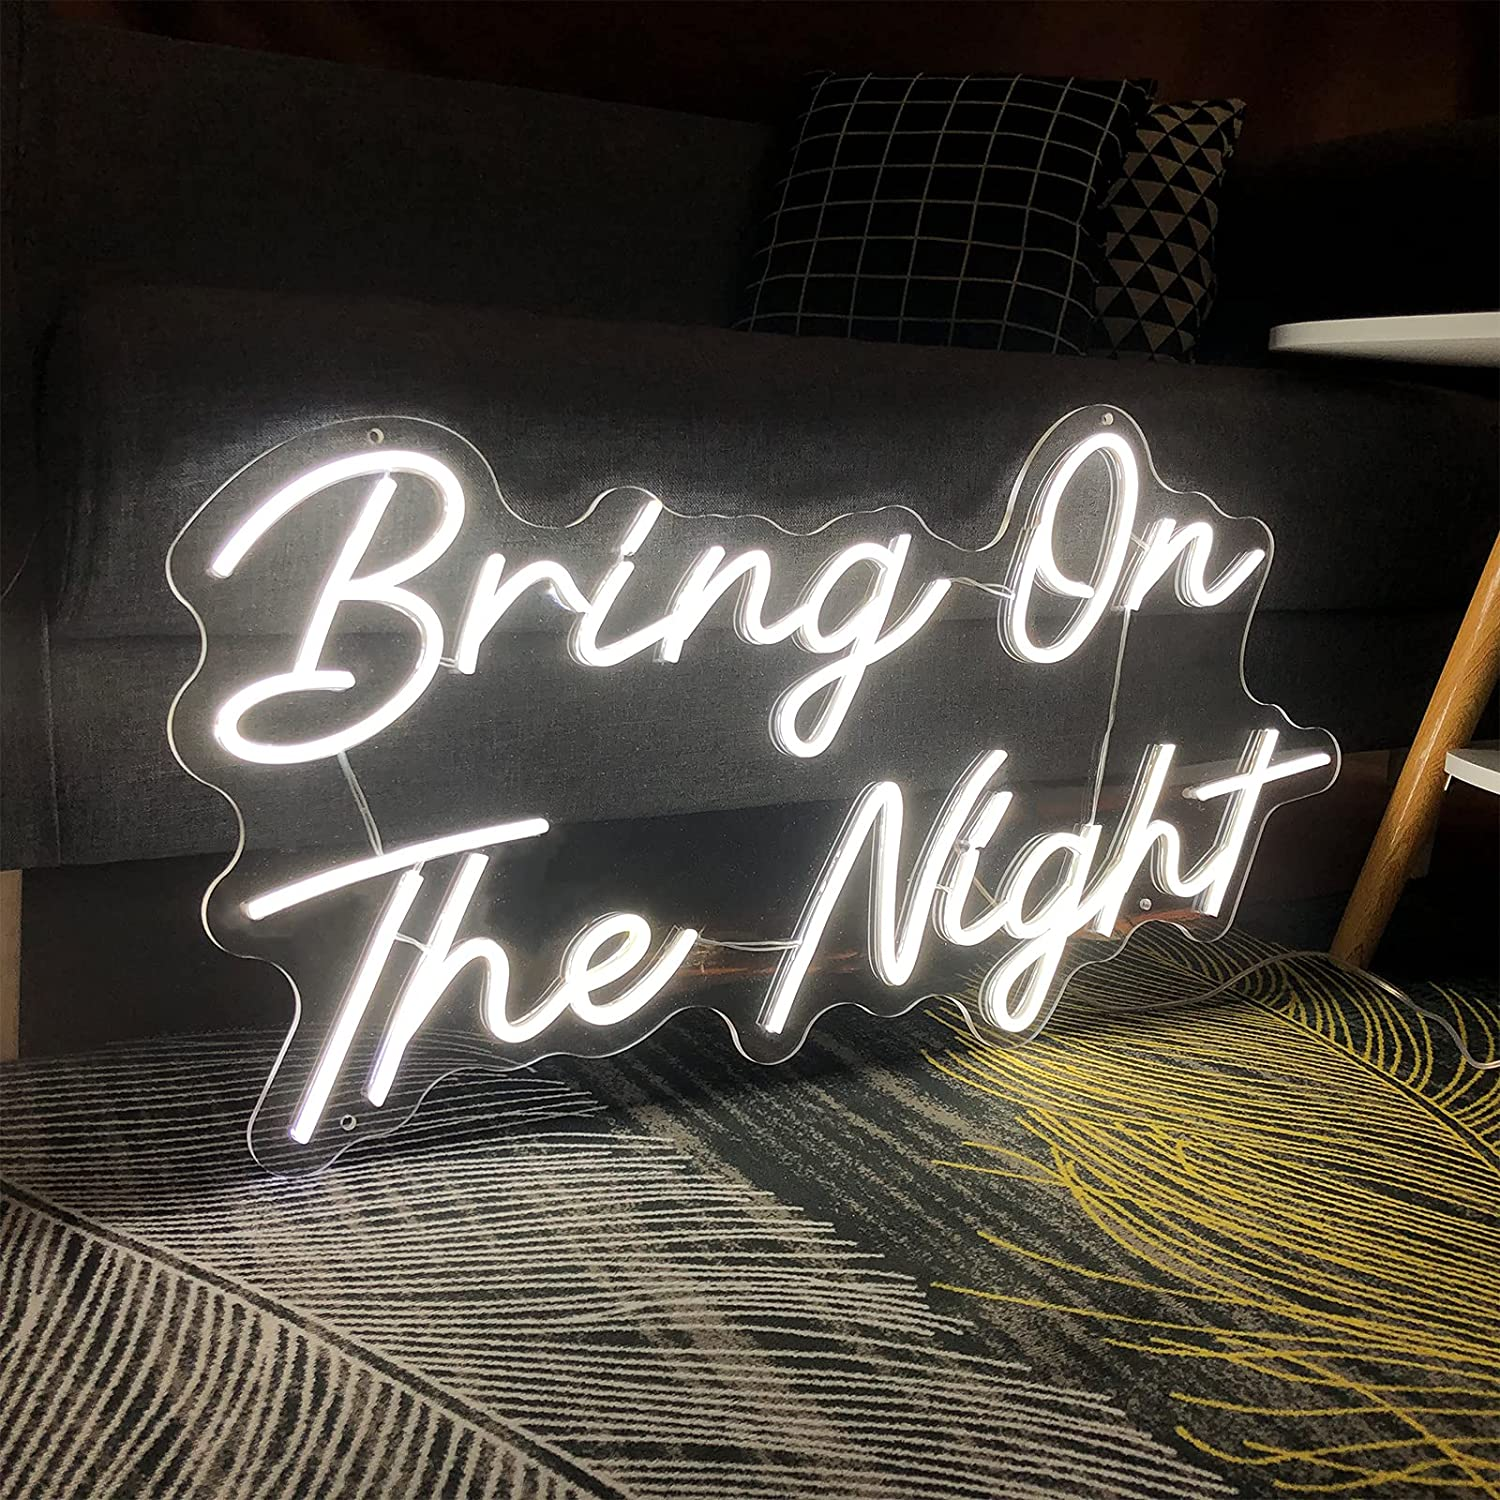 Neon Signs Bring On lowest price The L Night-Transparent Popular brand in the world Dimmers Acrylic with